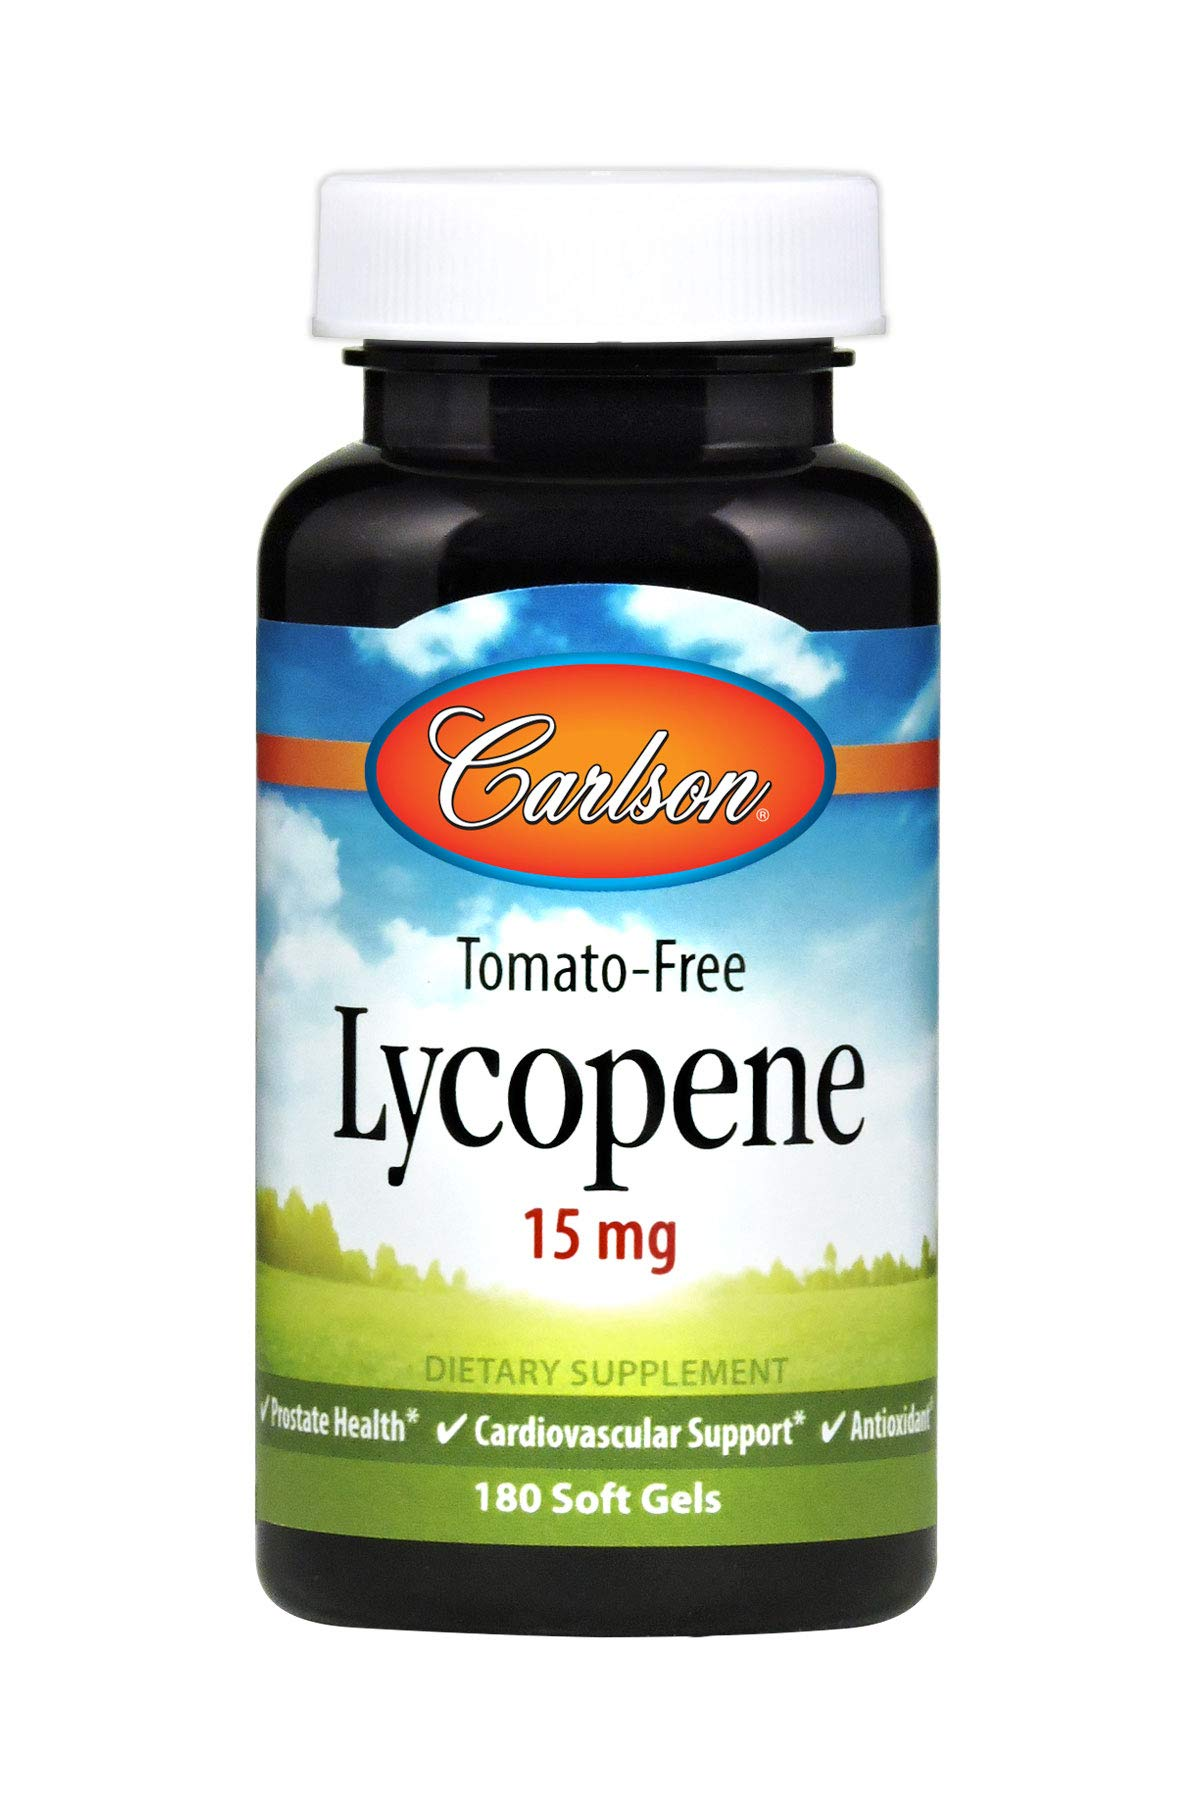 Carlson - Tomato-Free Lycopene, 15 mg, Prostate Health & Cardiovascular Support, Optimal Wellness, 180 Soft gels by Carlson